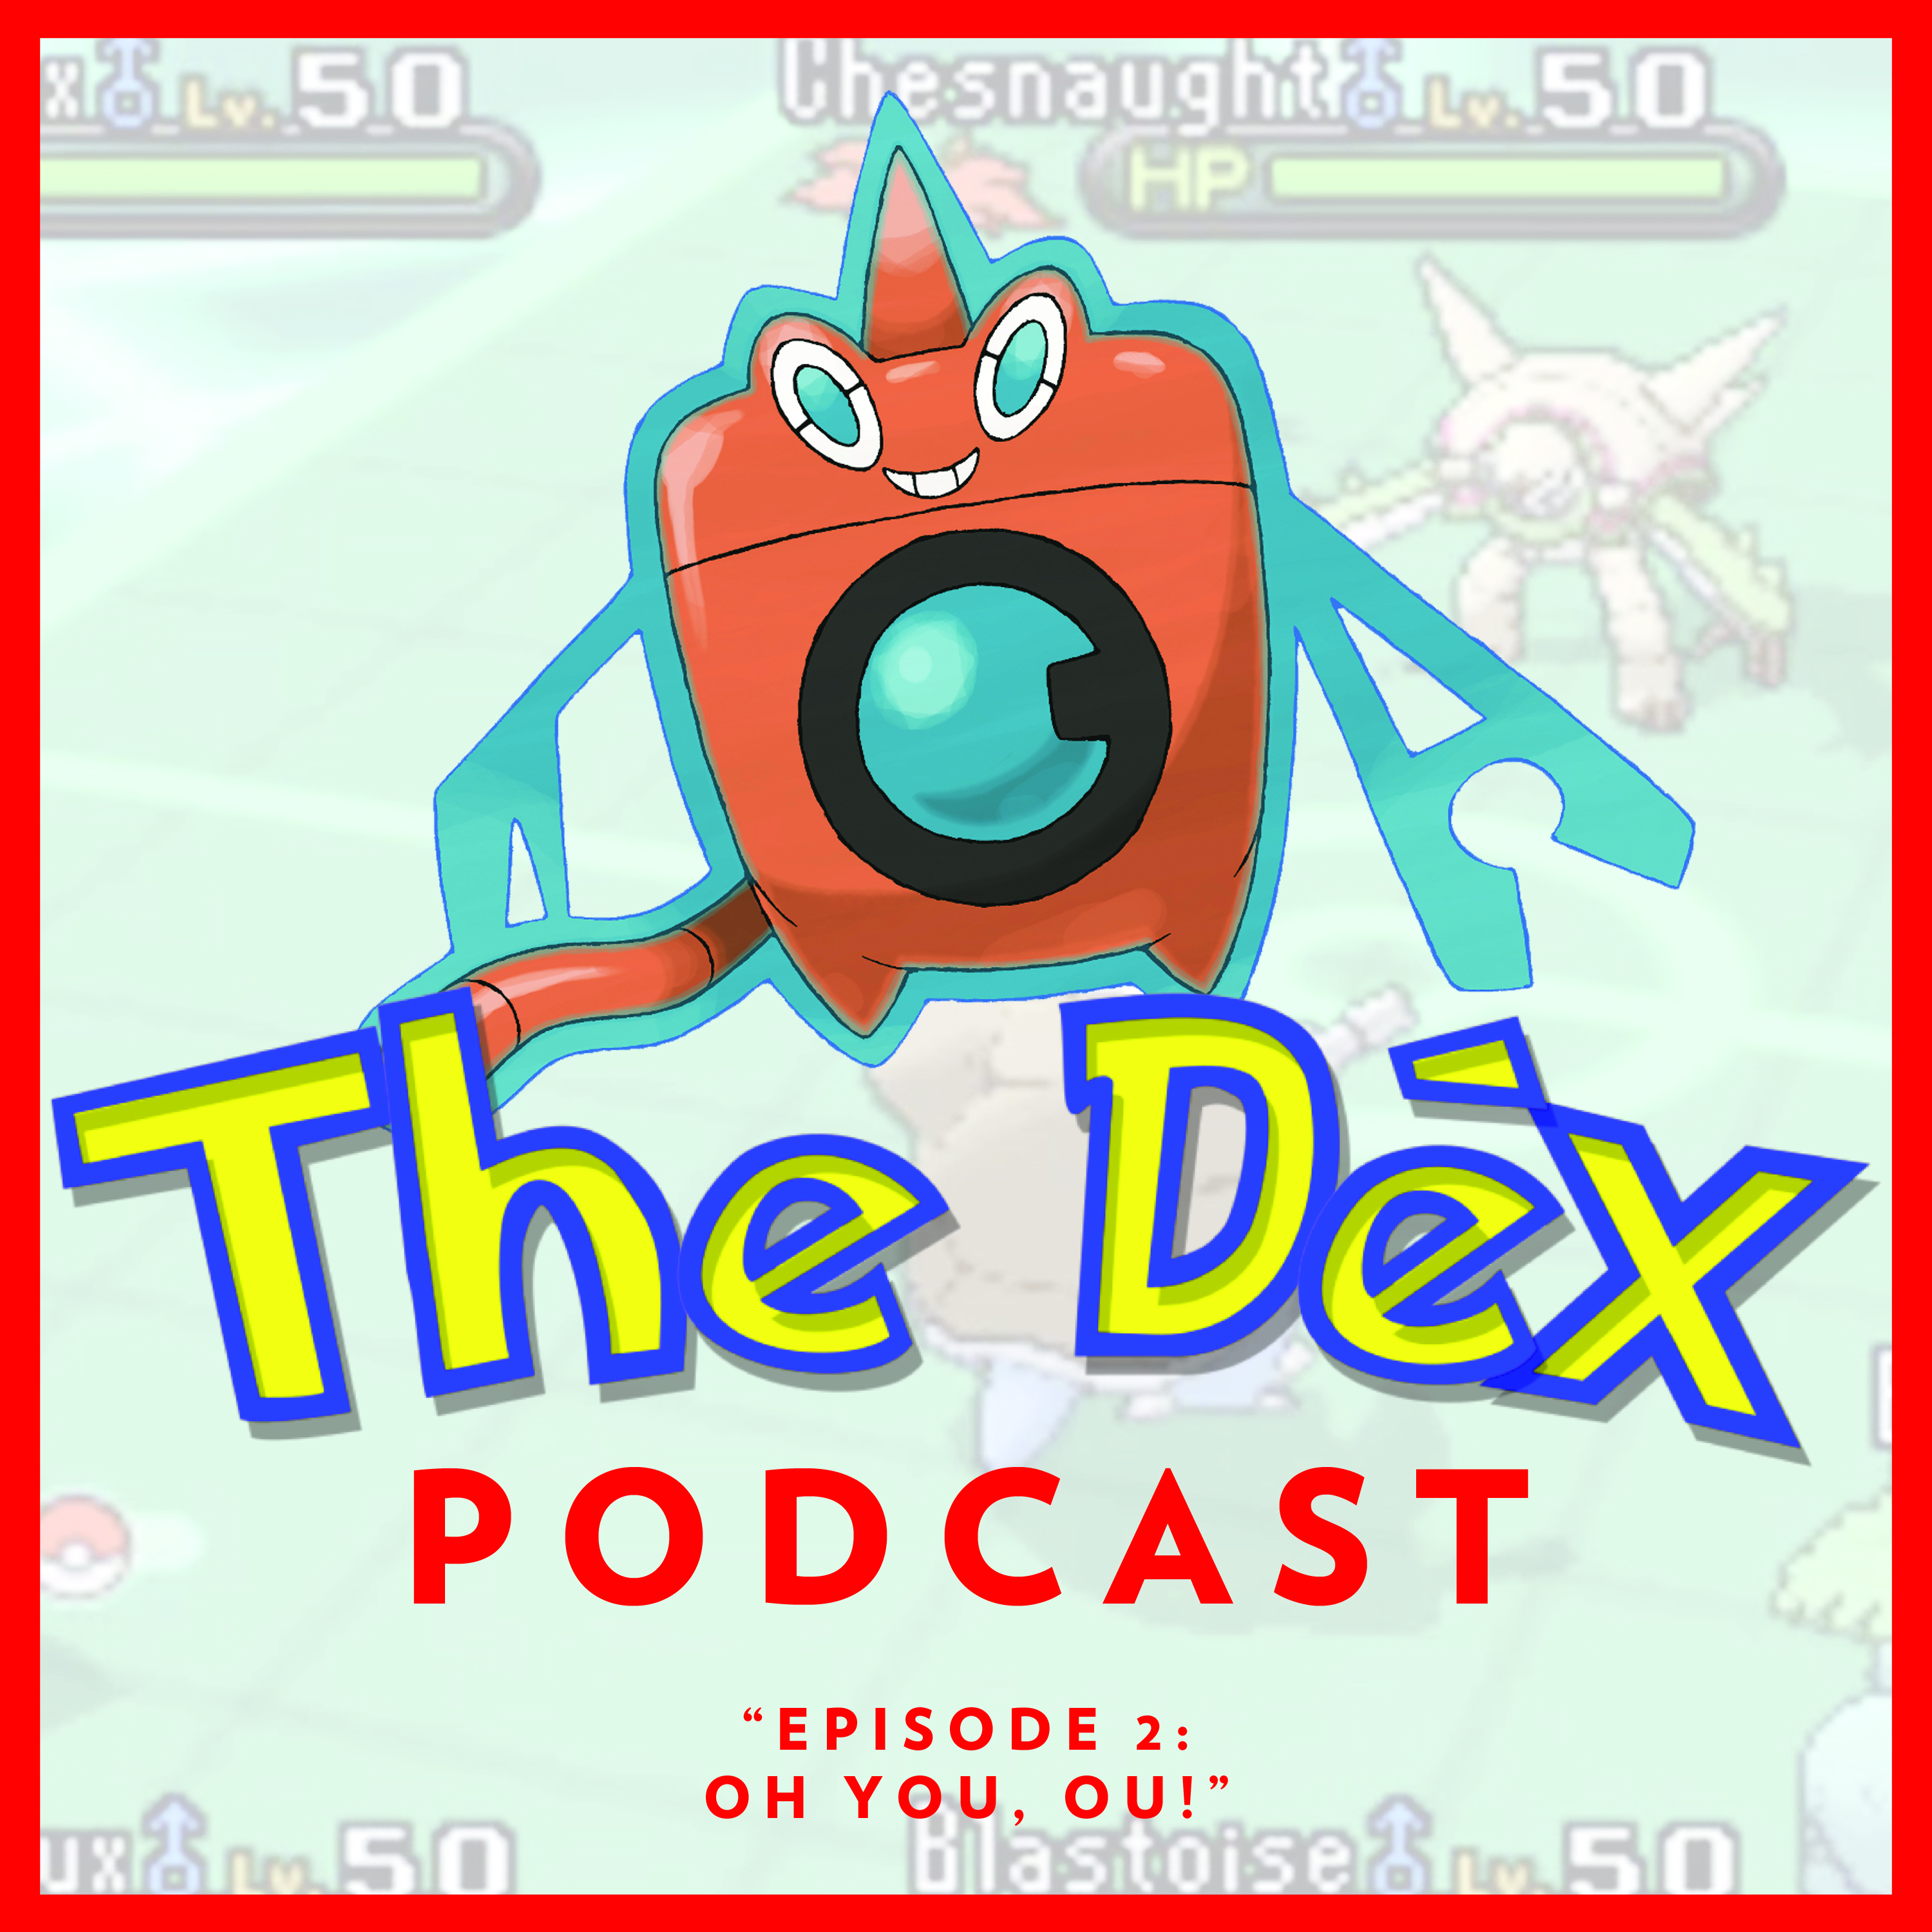 The Dex! Podcast #2: Oh You, OU!